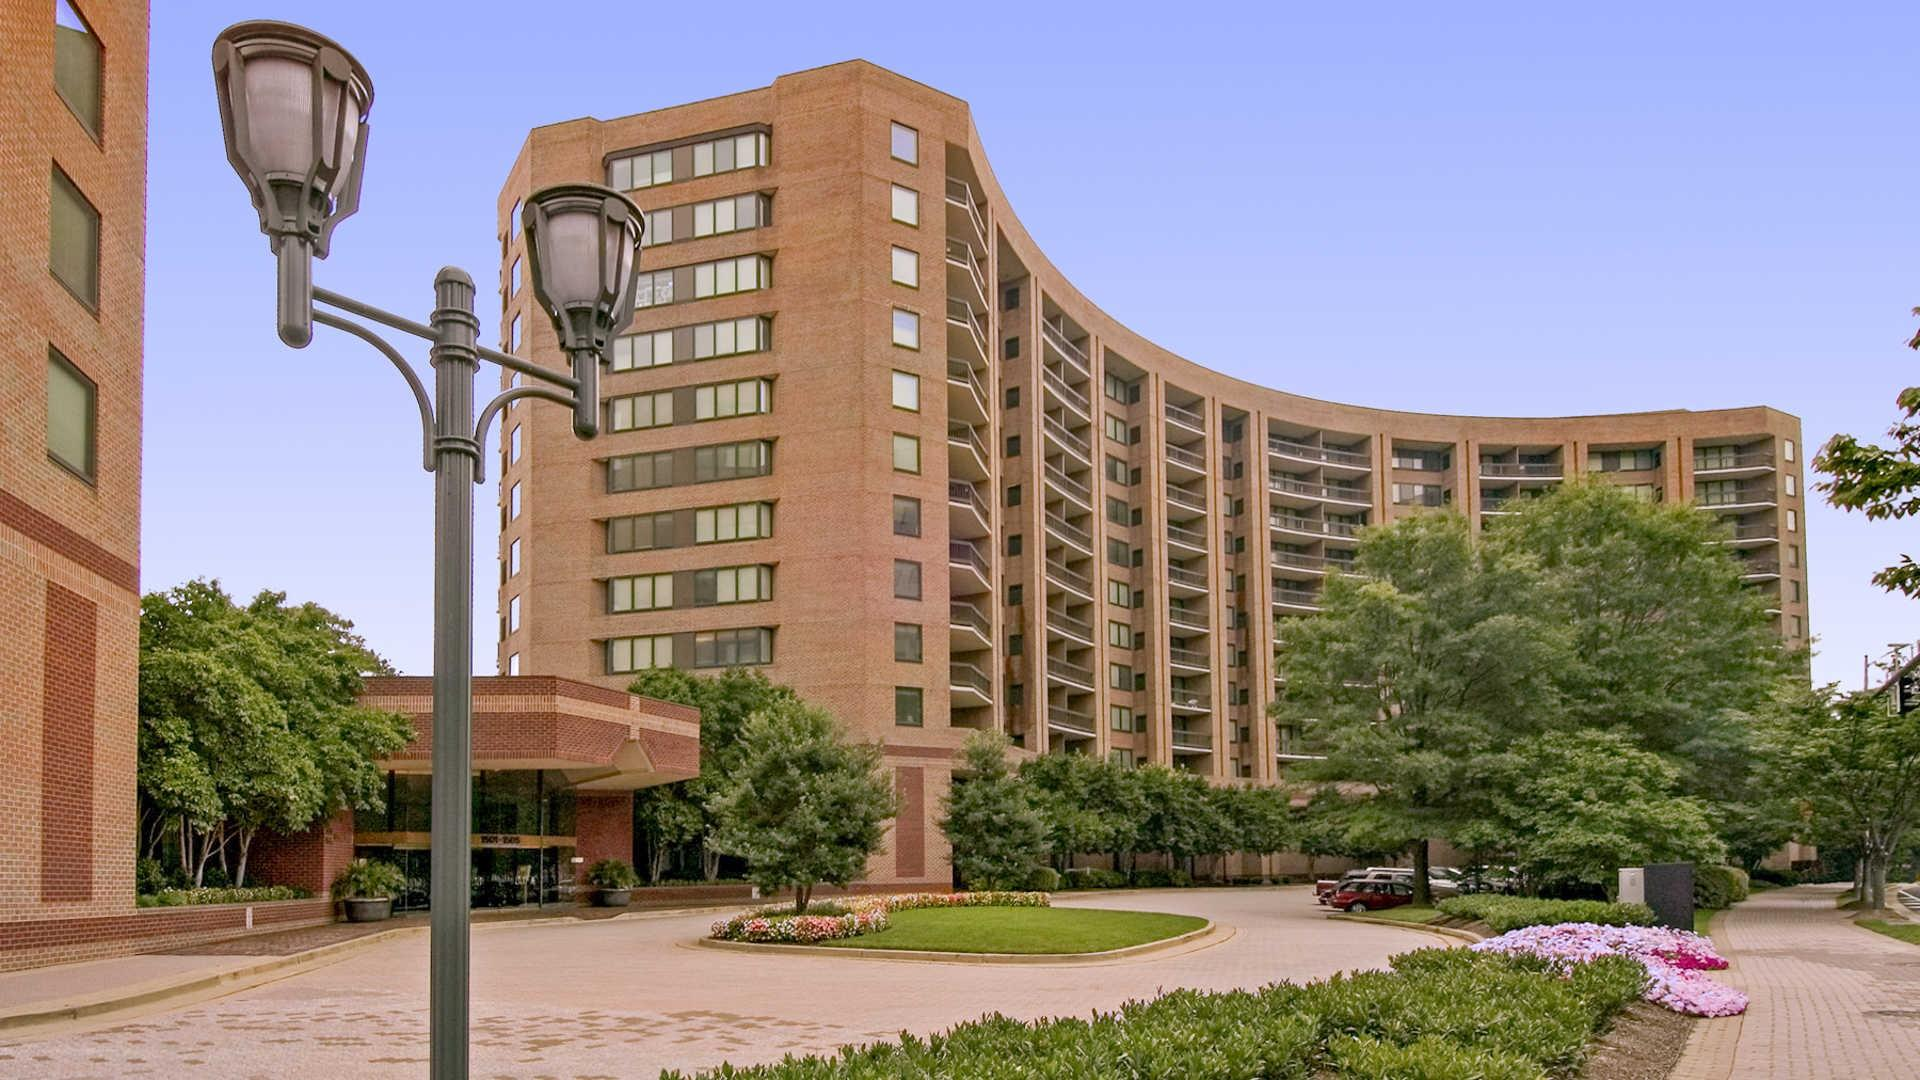 Water Park Towers Apartments photo #1